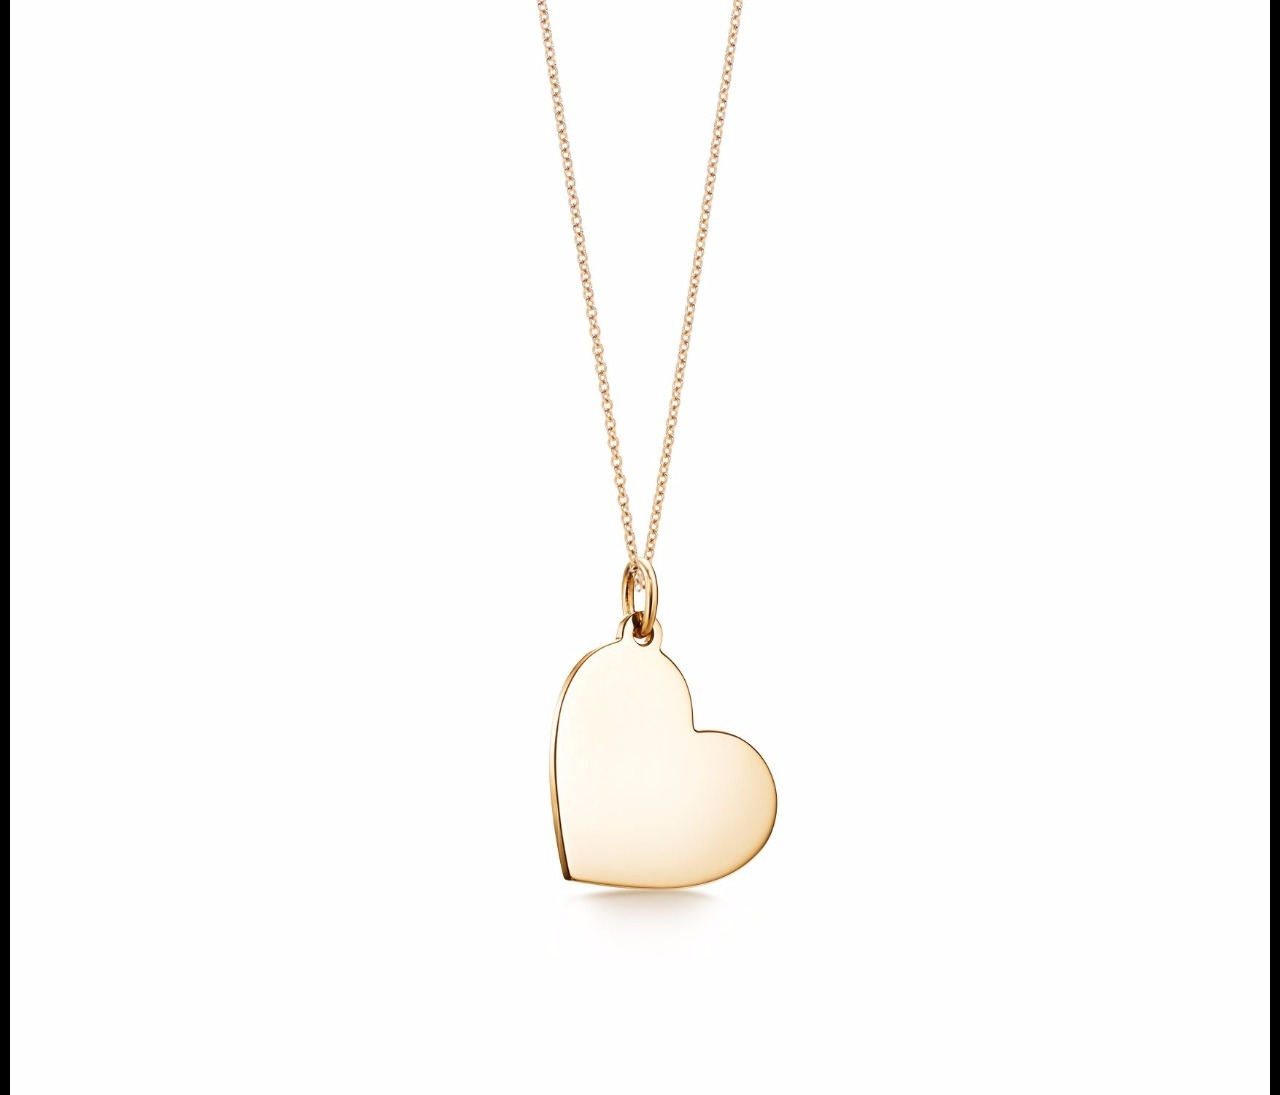 【Tiffany & Co】Heart Tag Pendant in 18k Gold